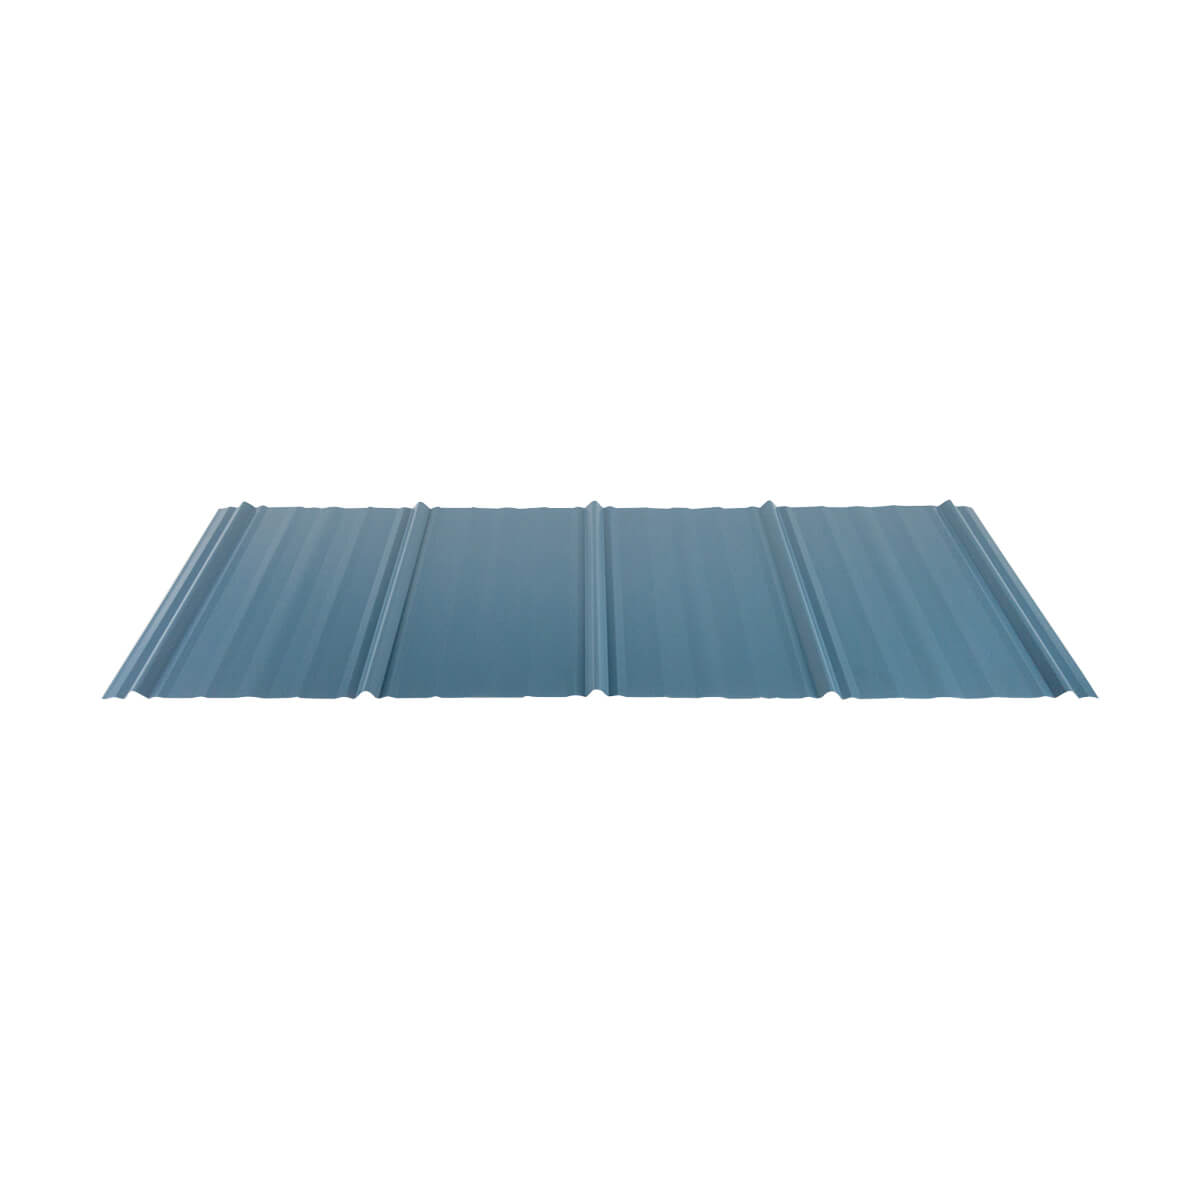 WeatherShield 1 Metal Sheets or Panels - 32-in x 8-ft